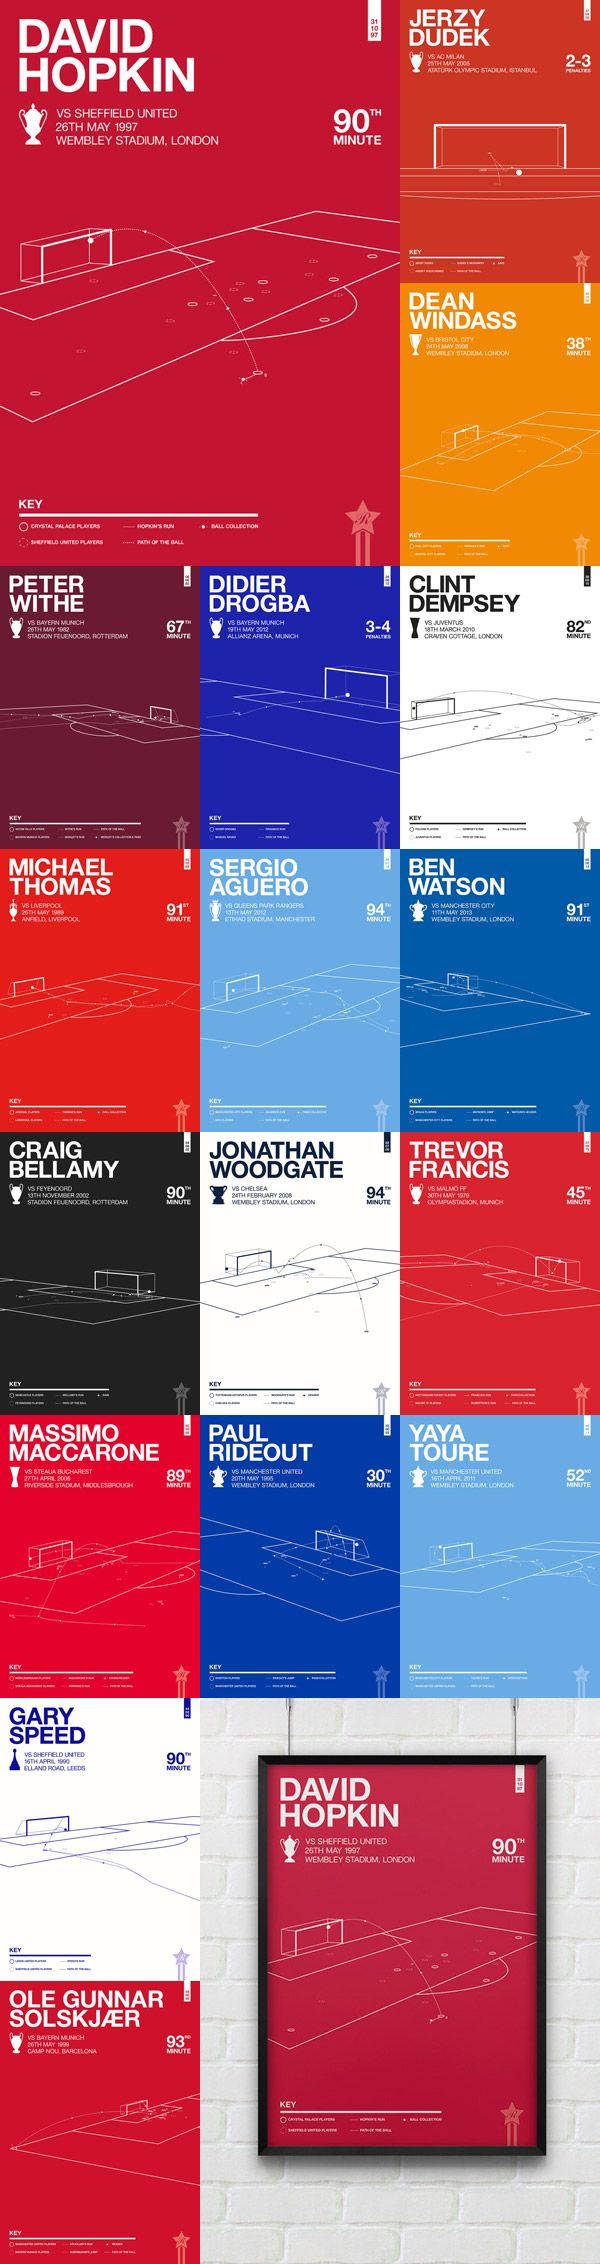 Graphic Prints of Iconic Football Moments #graphicprints